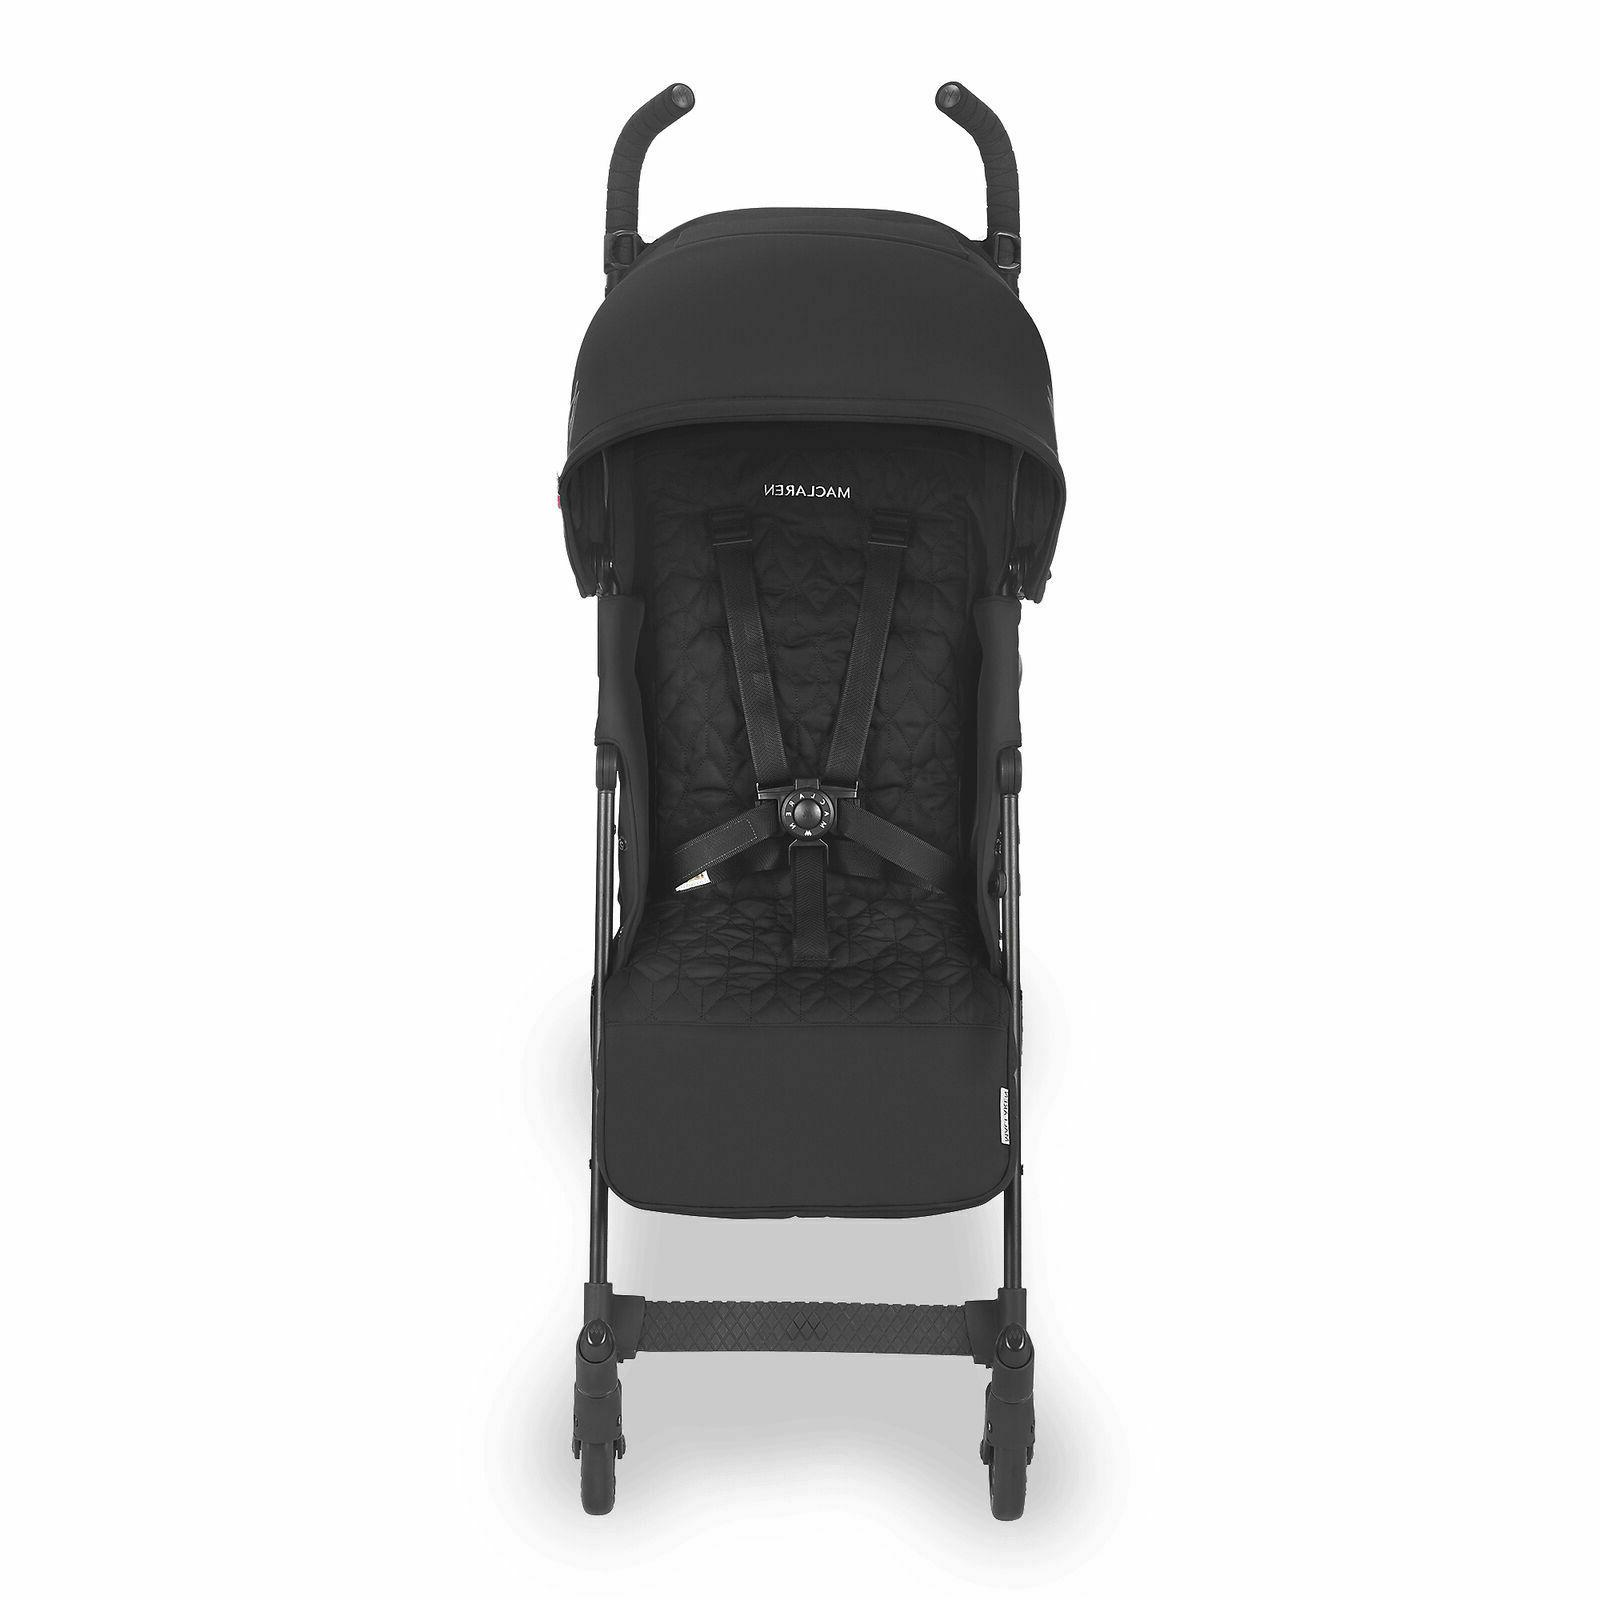 brand new quest style set baby stroller